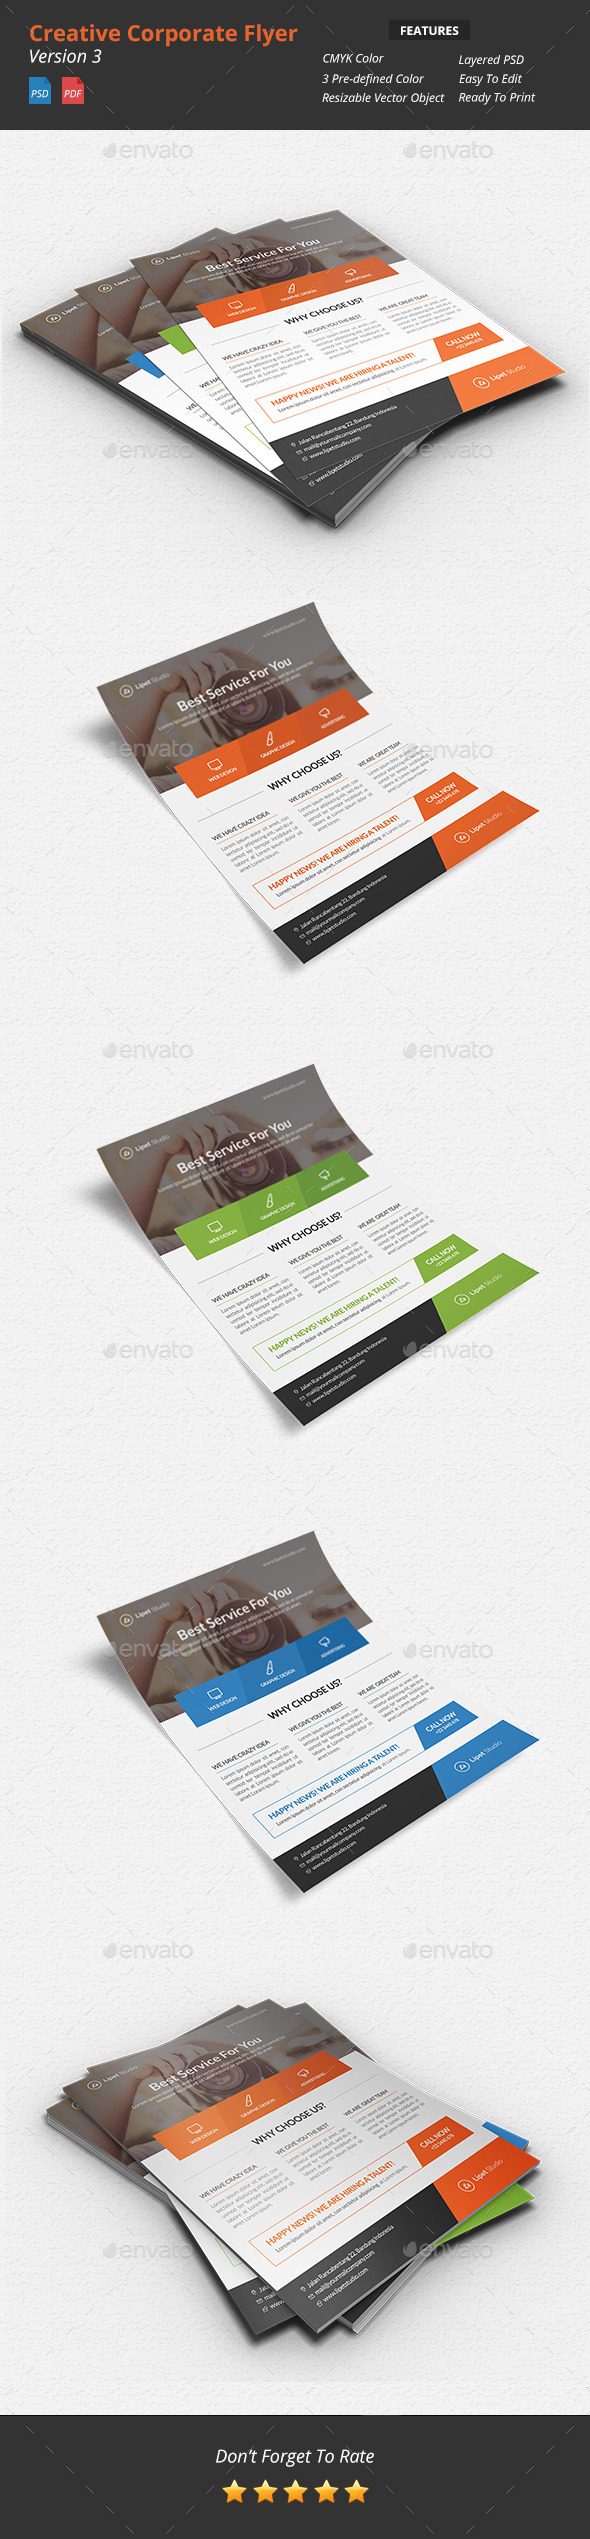 Creative Corporate Flyer v3 - Corporate Flyers